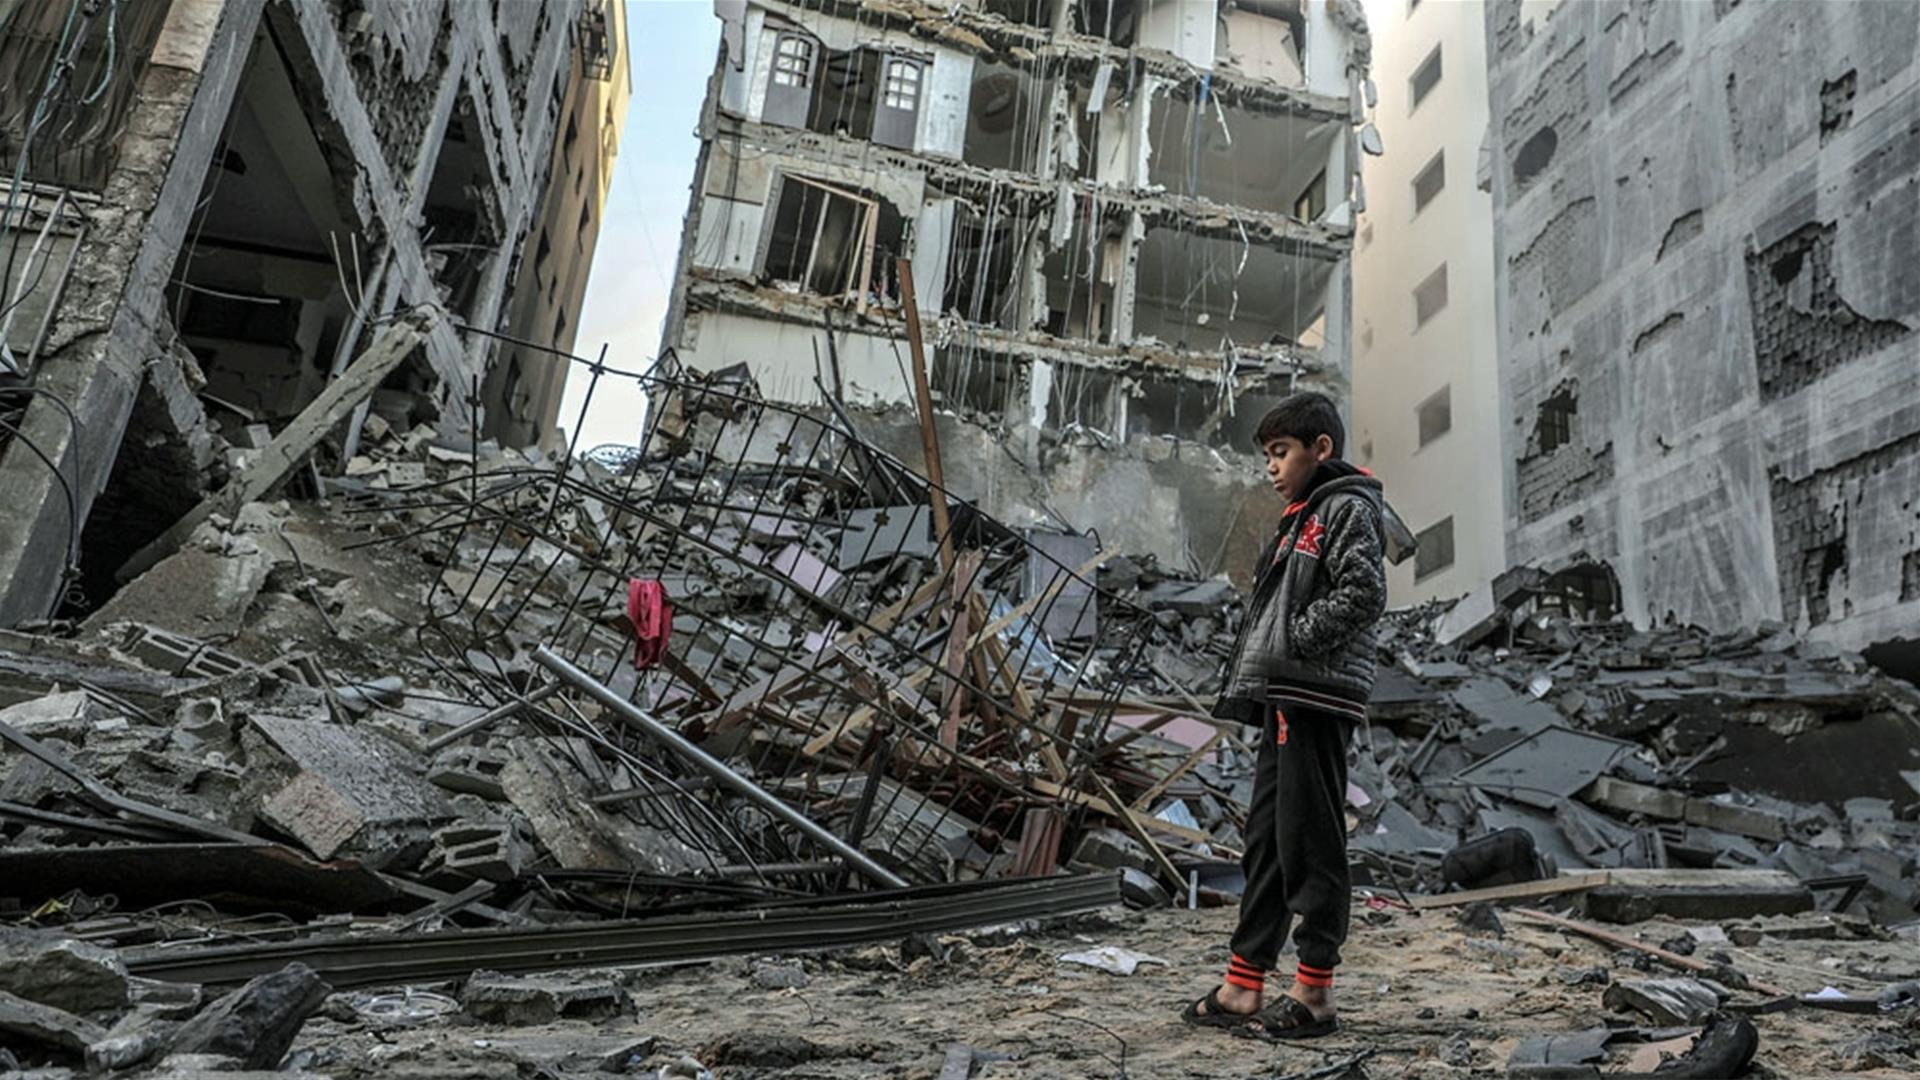 Palestinian groups to respect Gaza truce 'as long as Israel does'